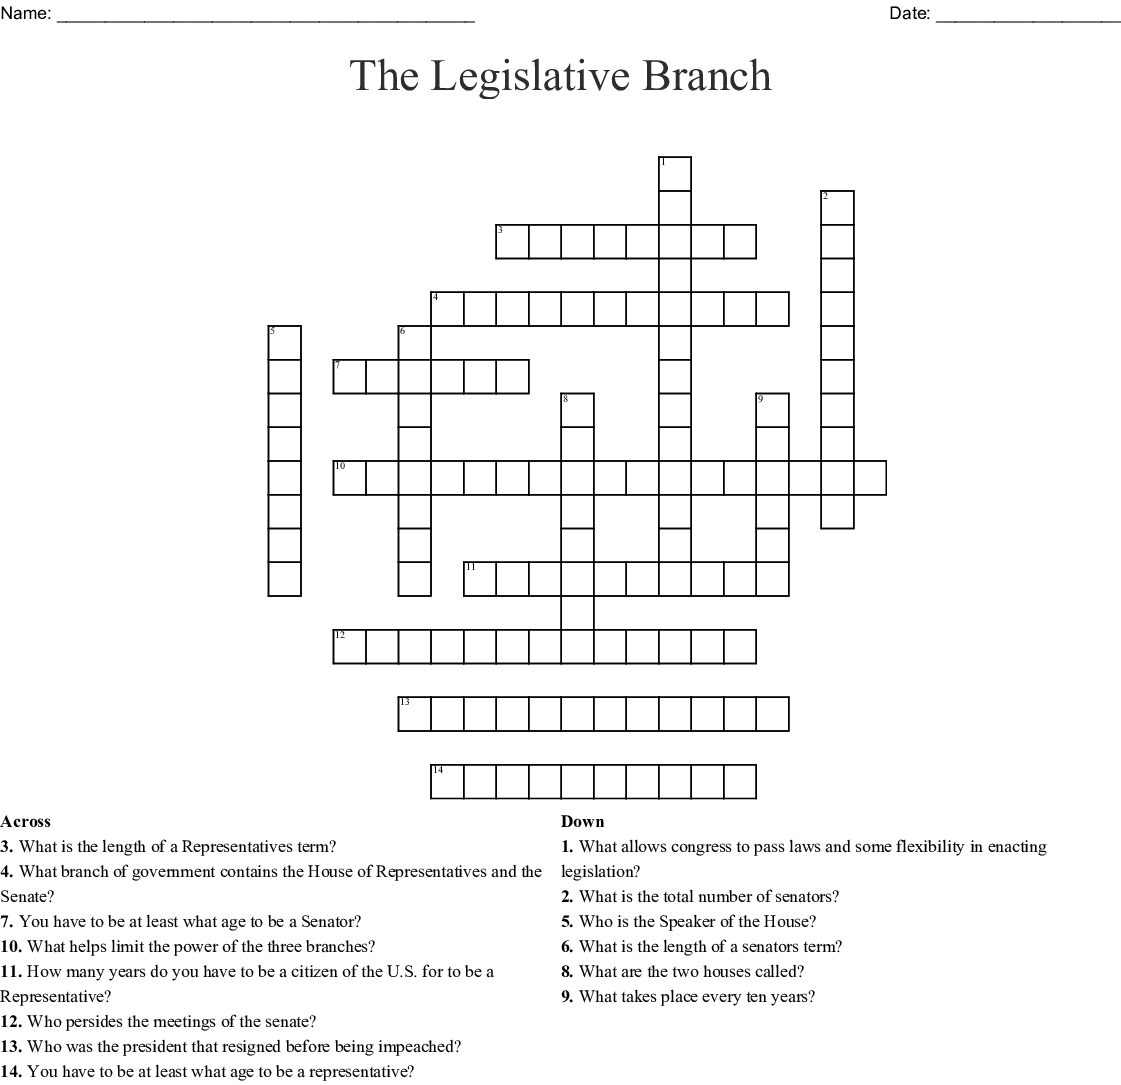 The Legislative Branch Crossword